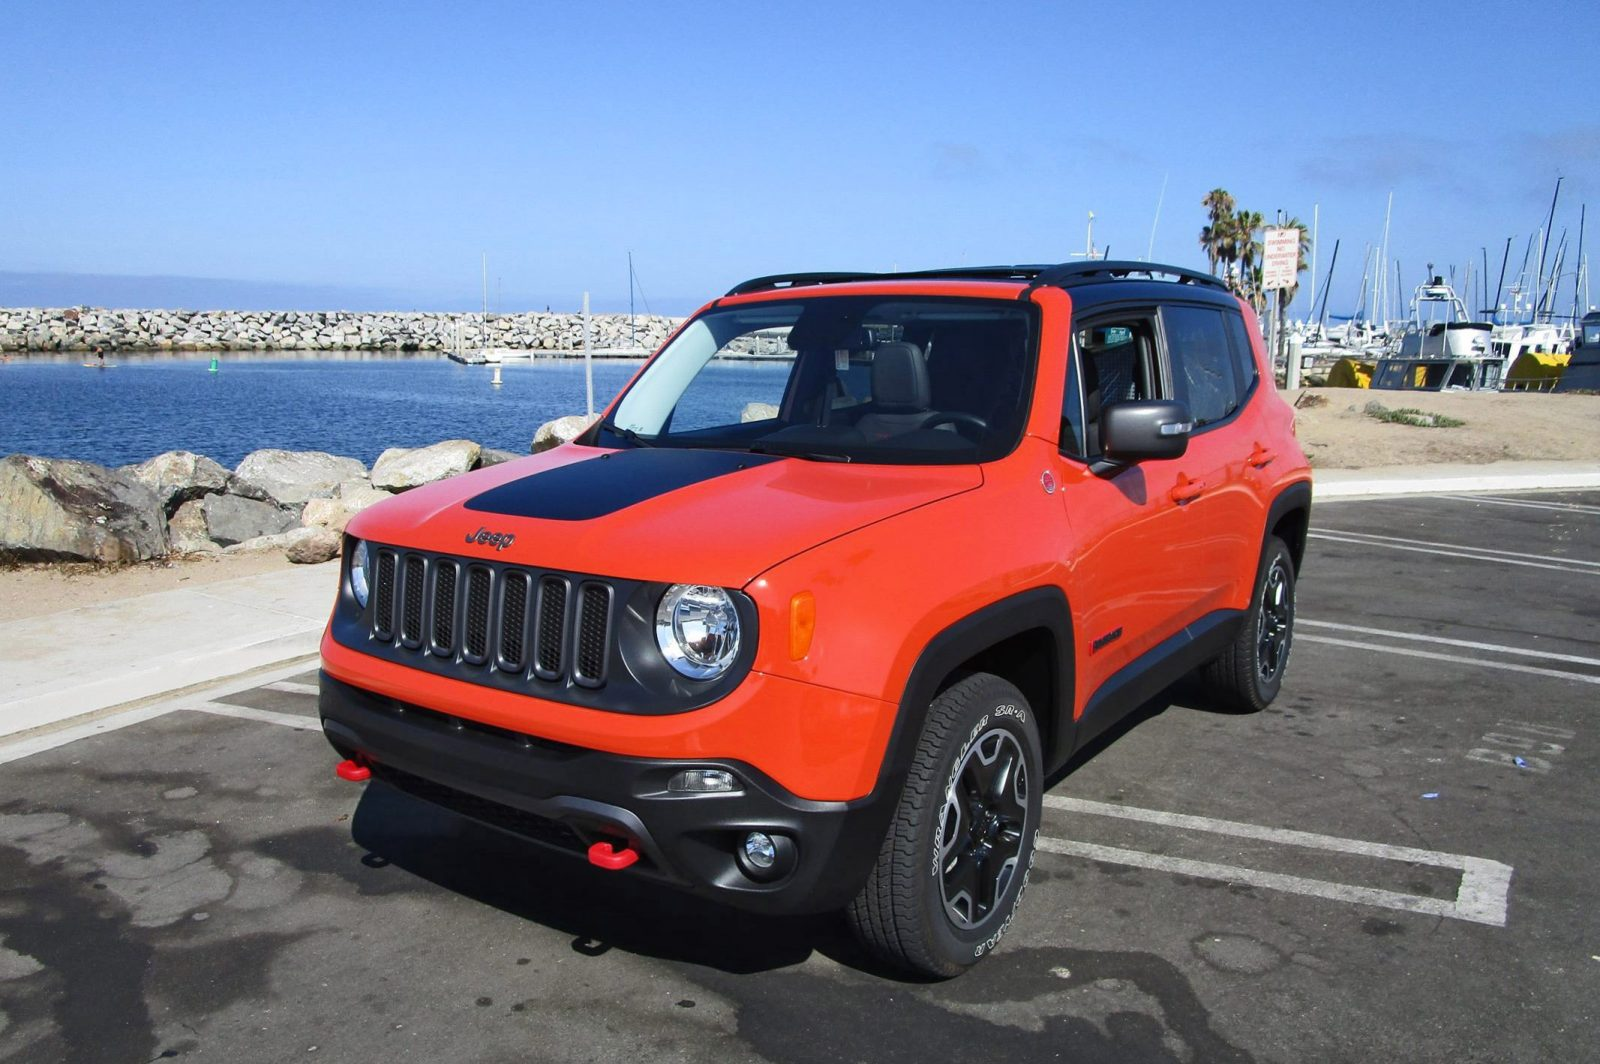 Jeep Trailhawk Lifted >> 2016 Jeep RENEGADE Trailhawk 4x4 - Road Test Review - By Ben Lewis » Car-Revs-Daily.com